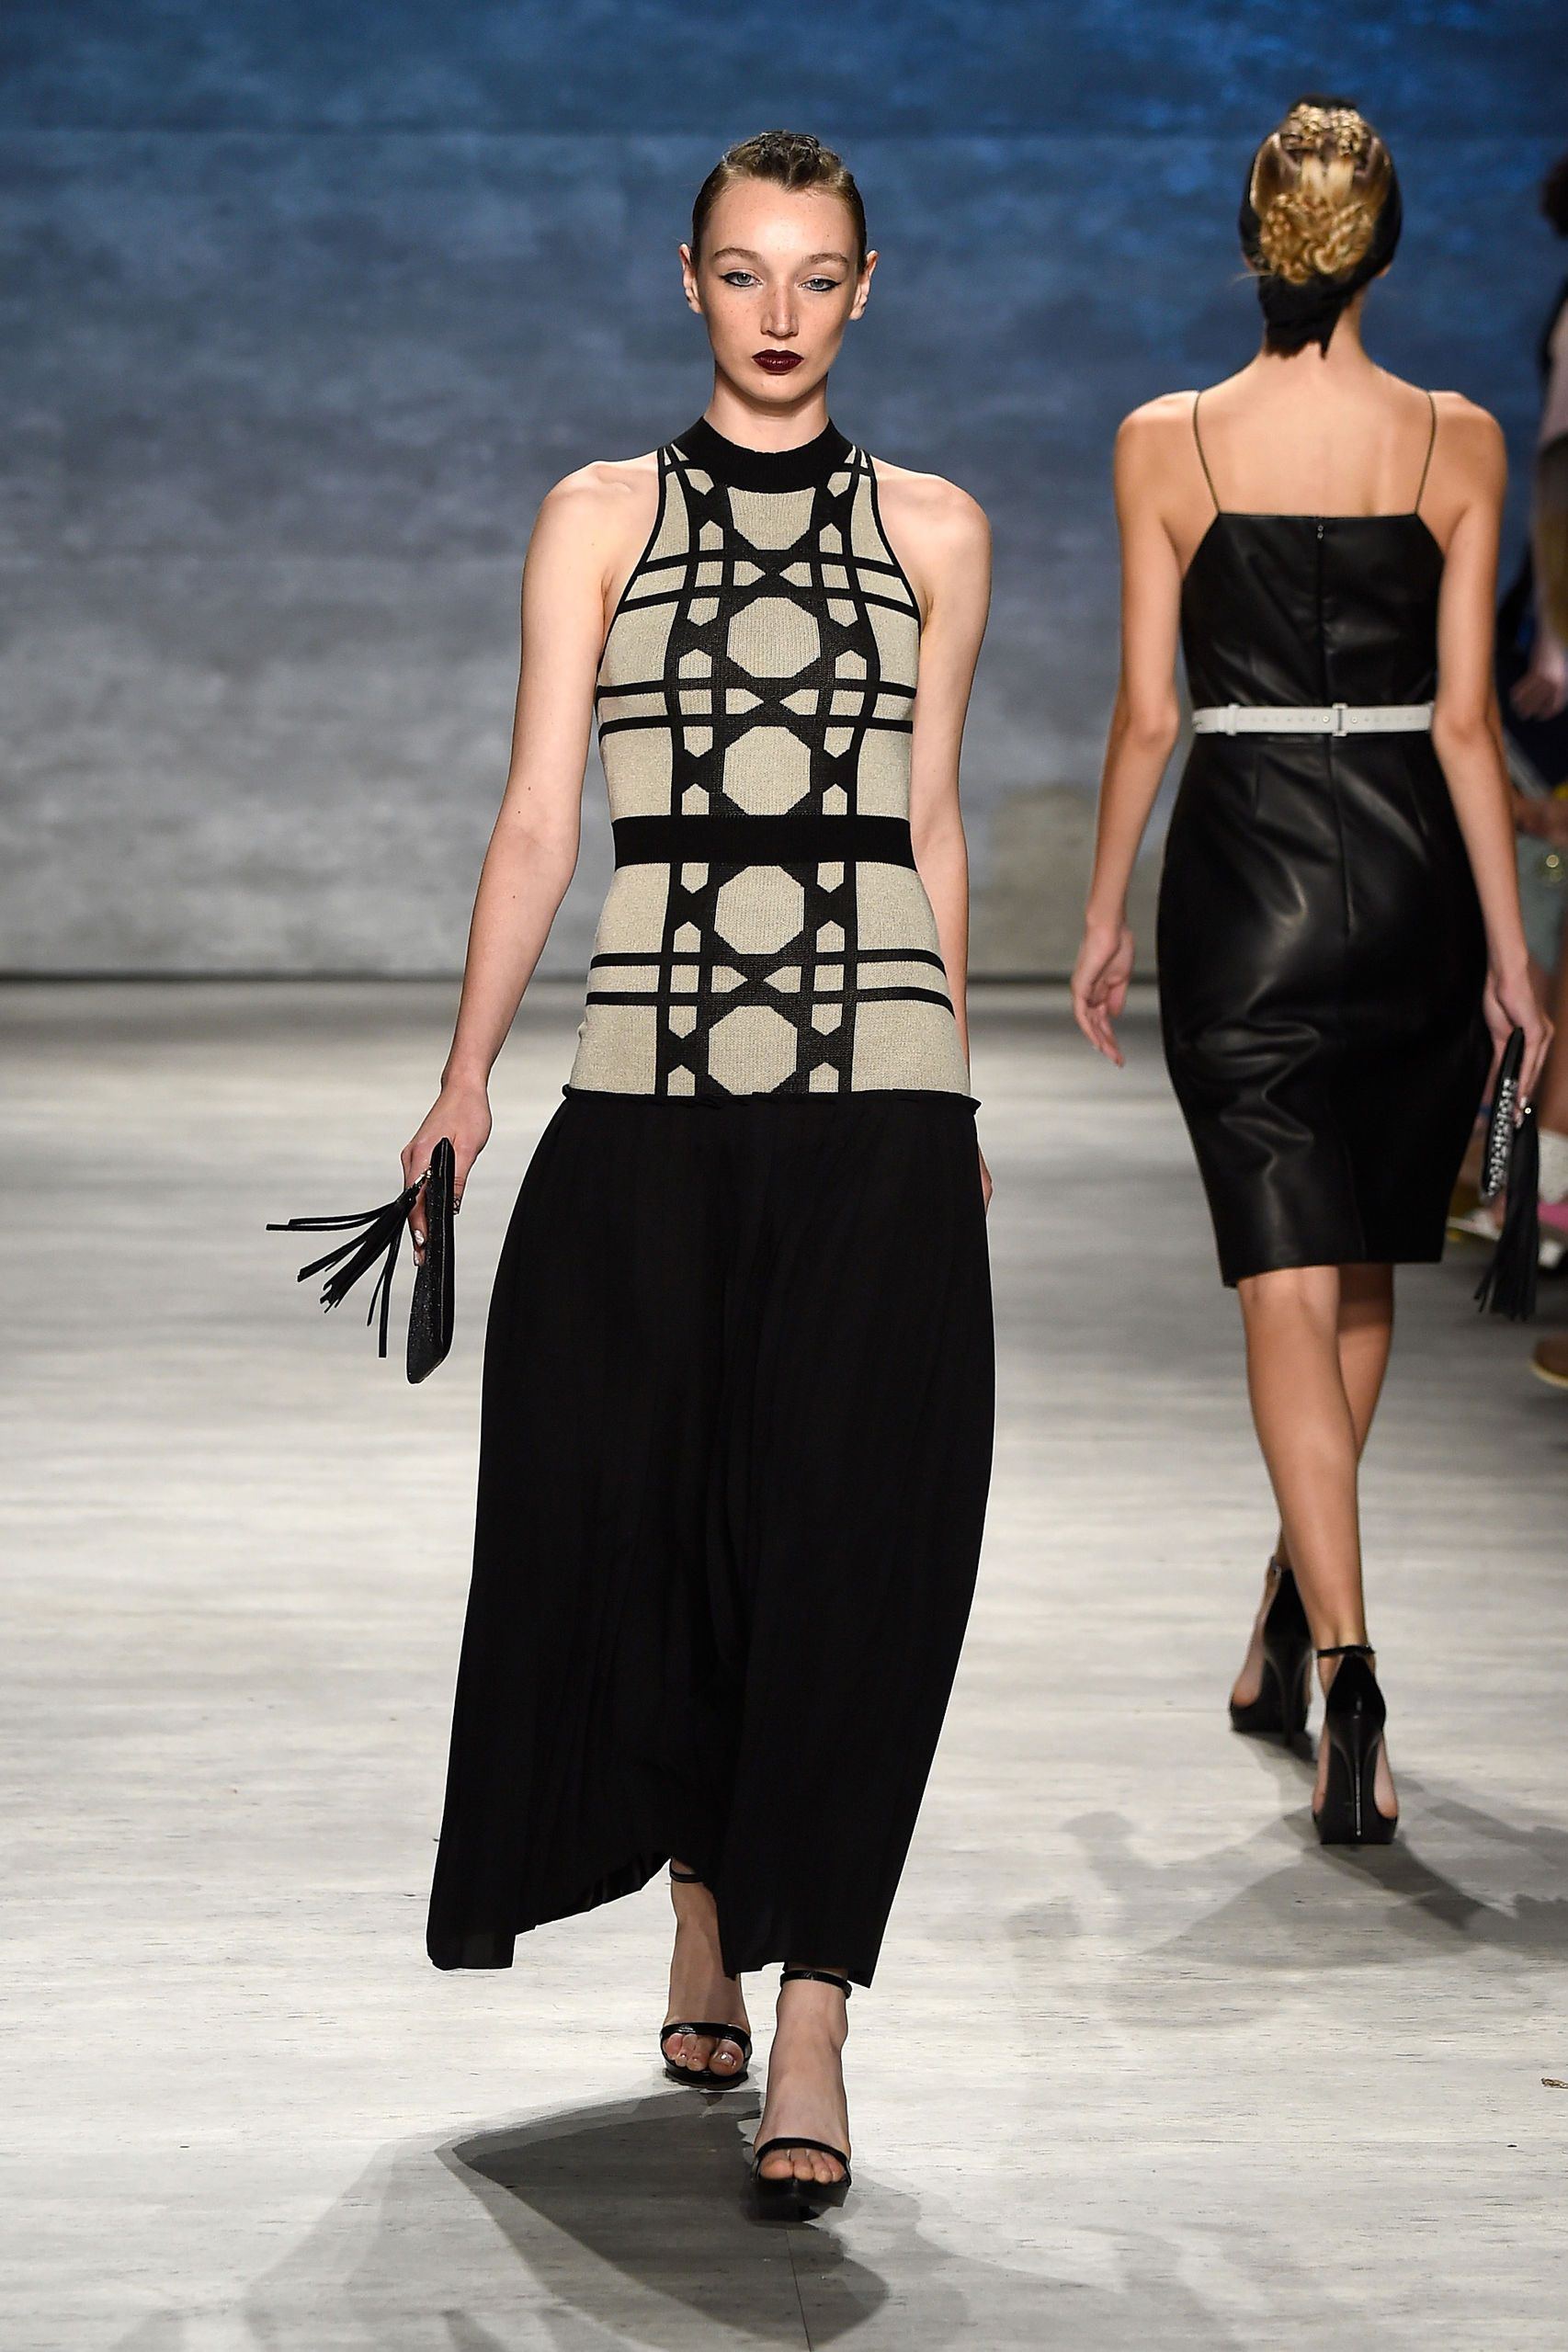 MORE: To Discuss: Is New York Fashion Week Losing Its Relevance picture